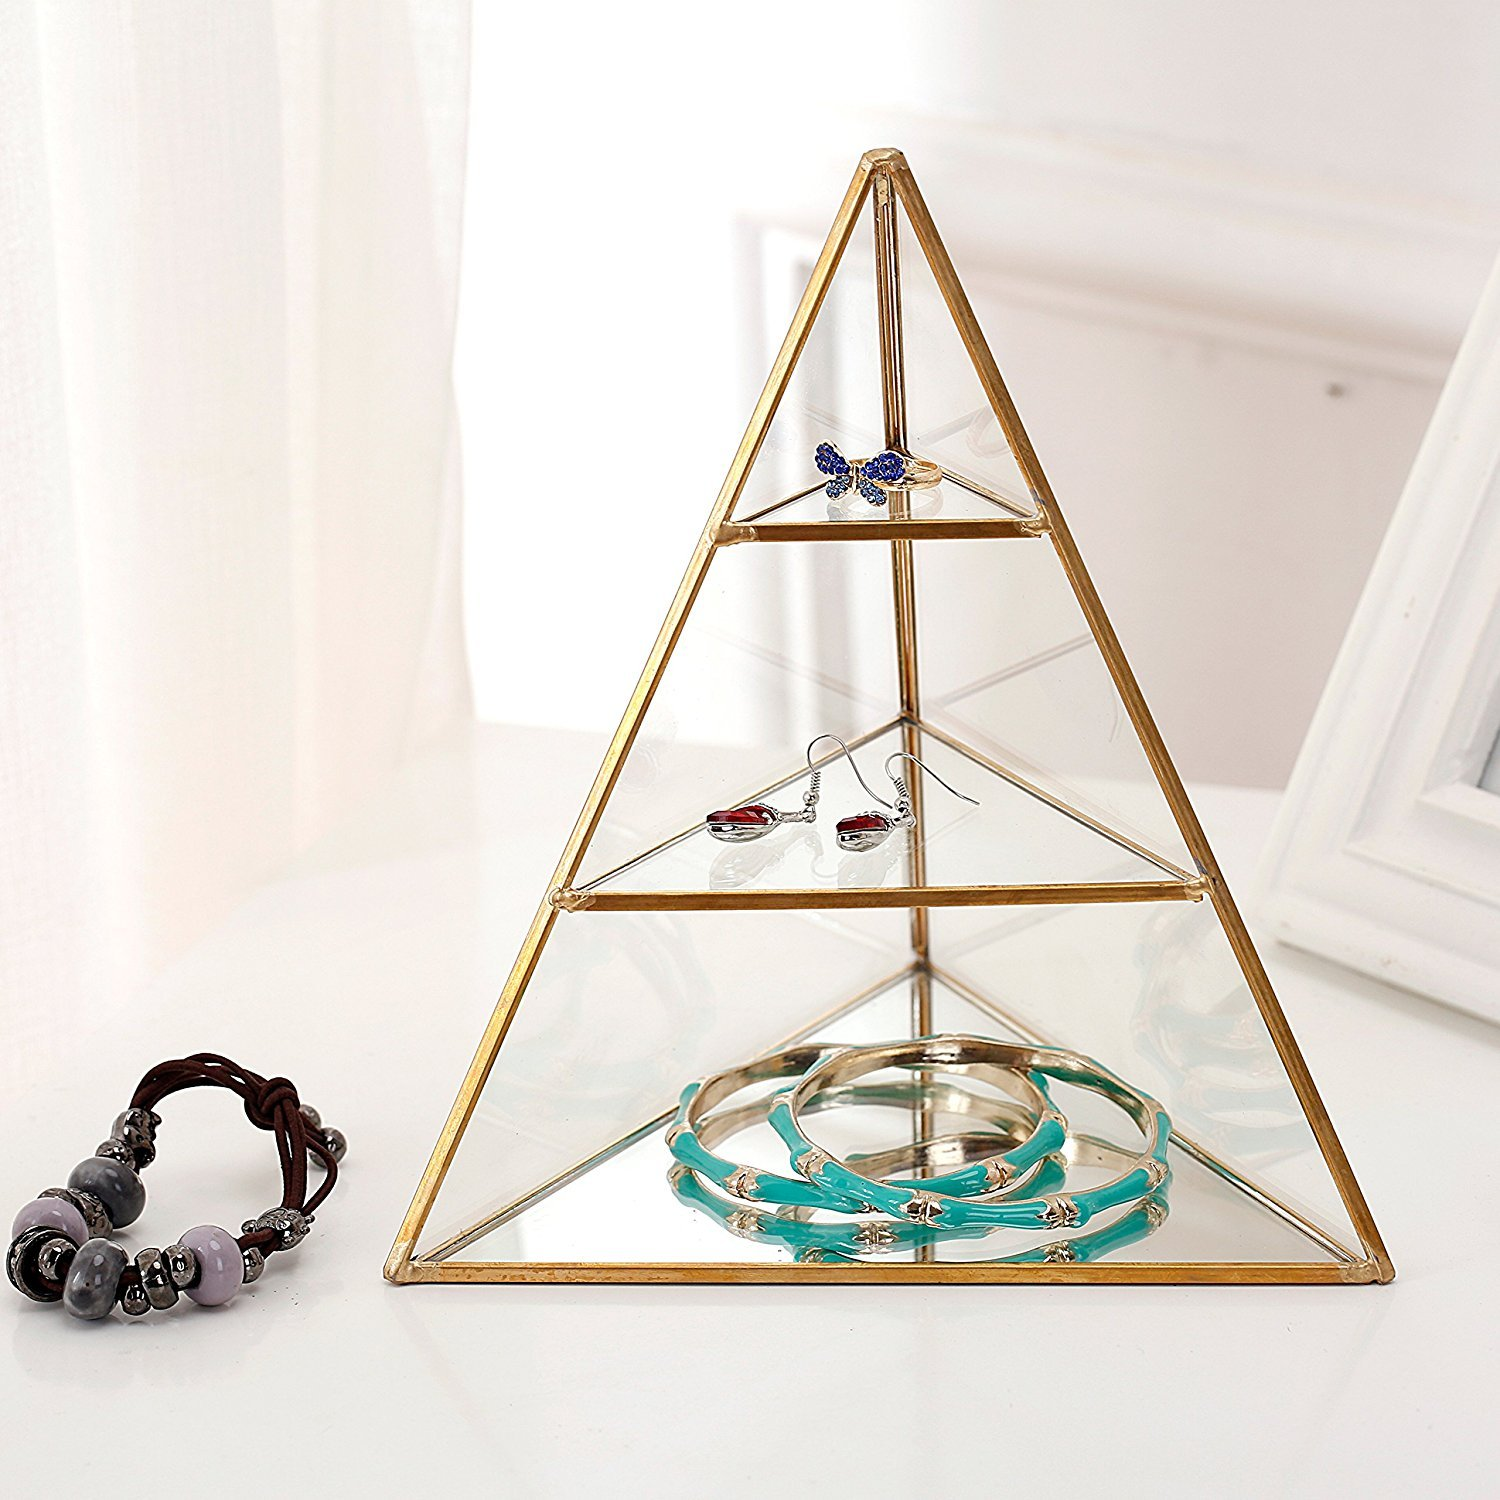 3 Tier Glass Pyramid Jewelry Stand Display Case with Vintage Style Brass Tone Metal Frame